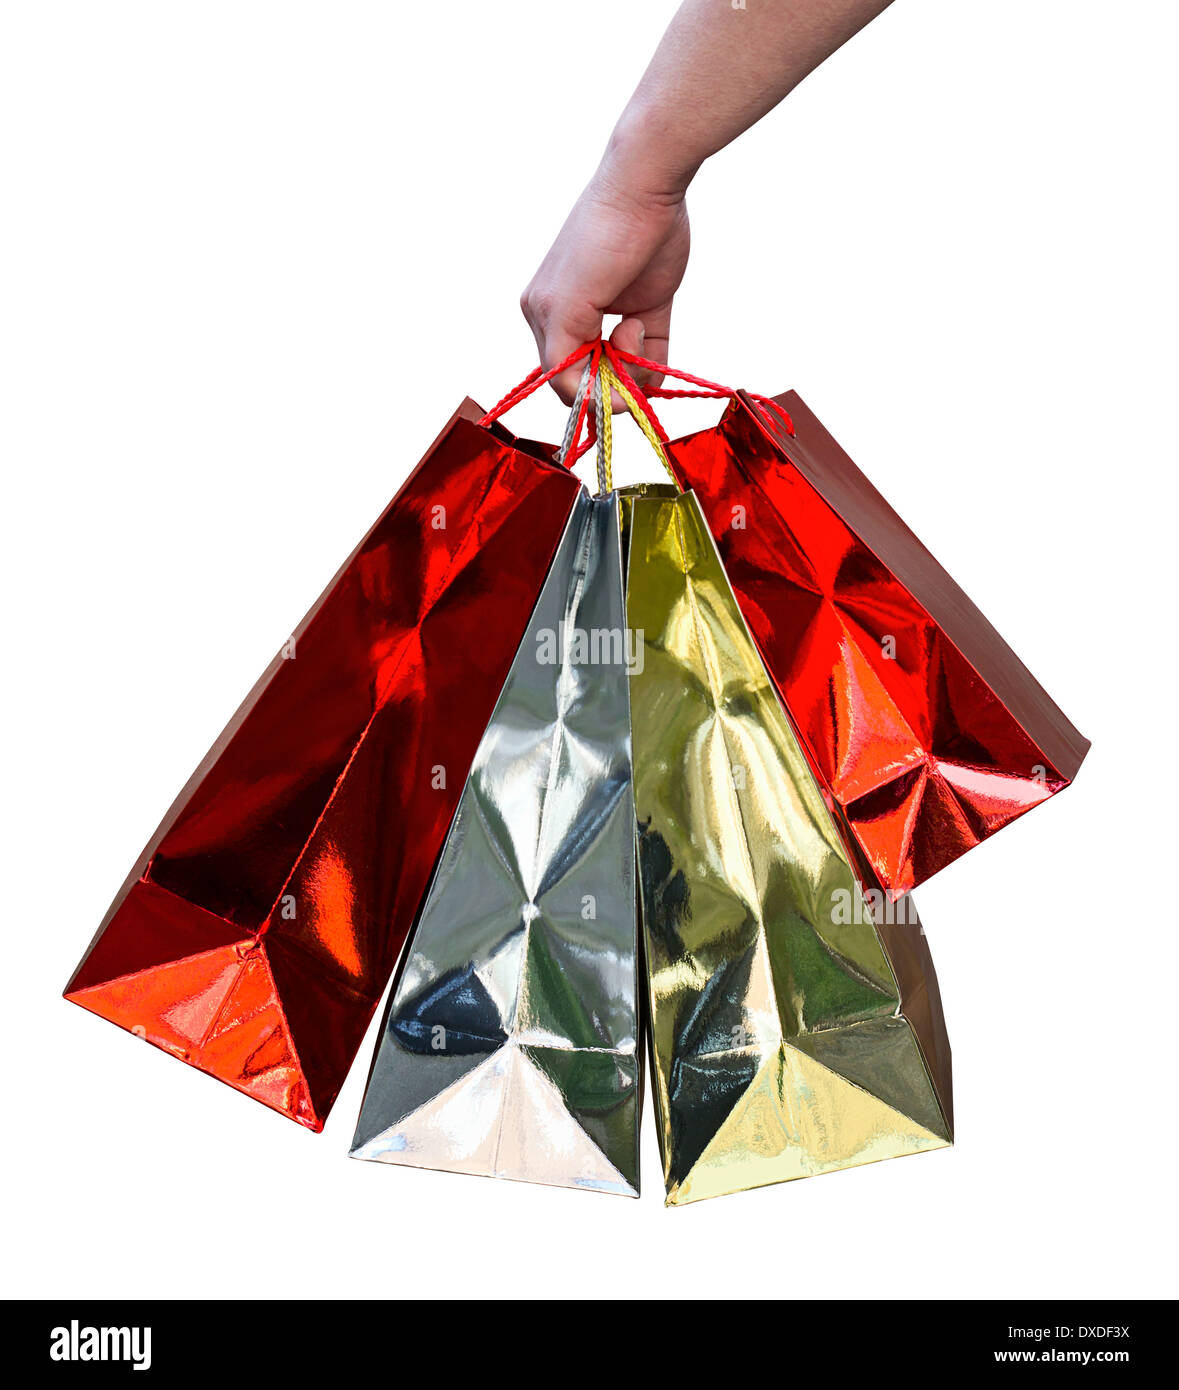 Hand carrying red and gold shiny gift bags of shopping purchased from a mall - Stock Image